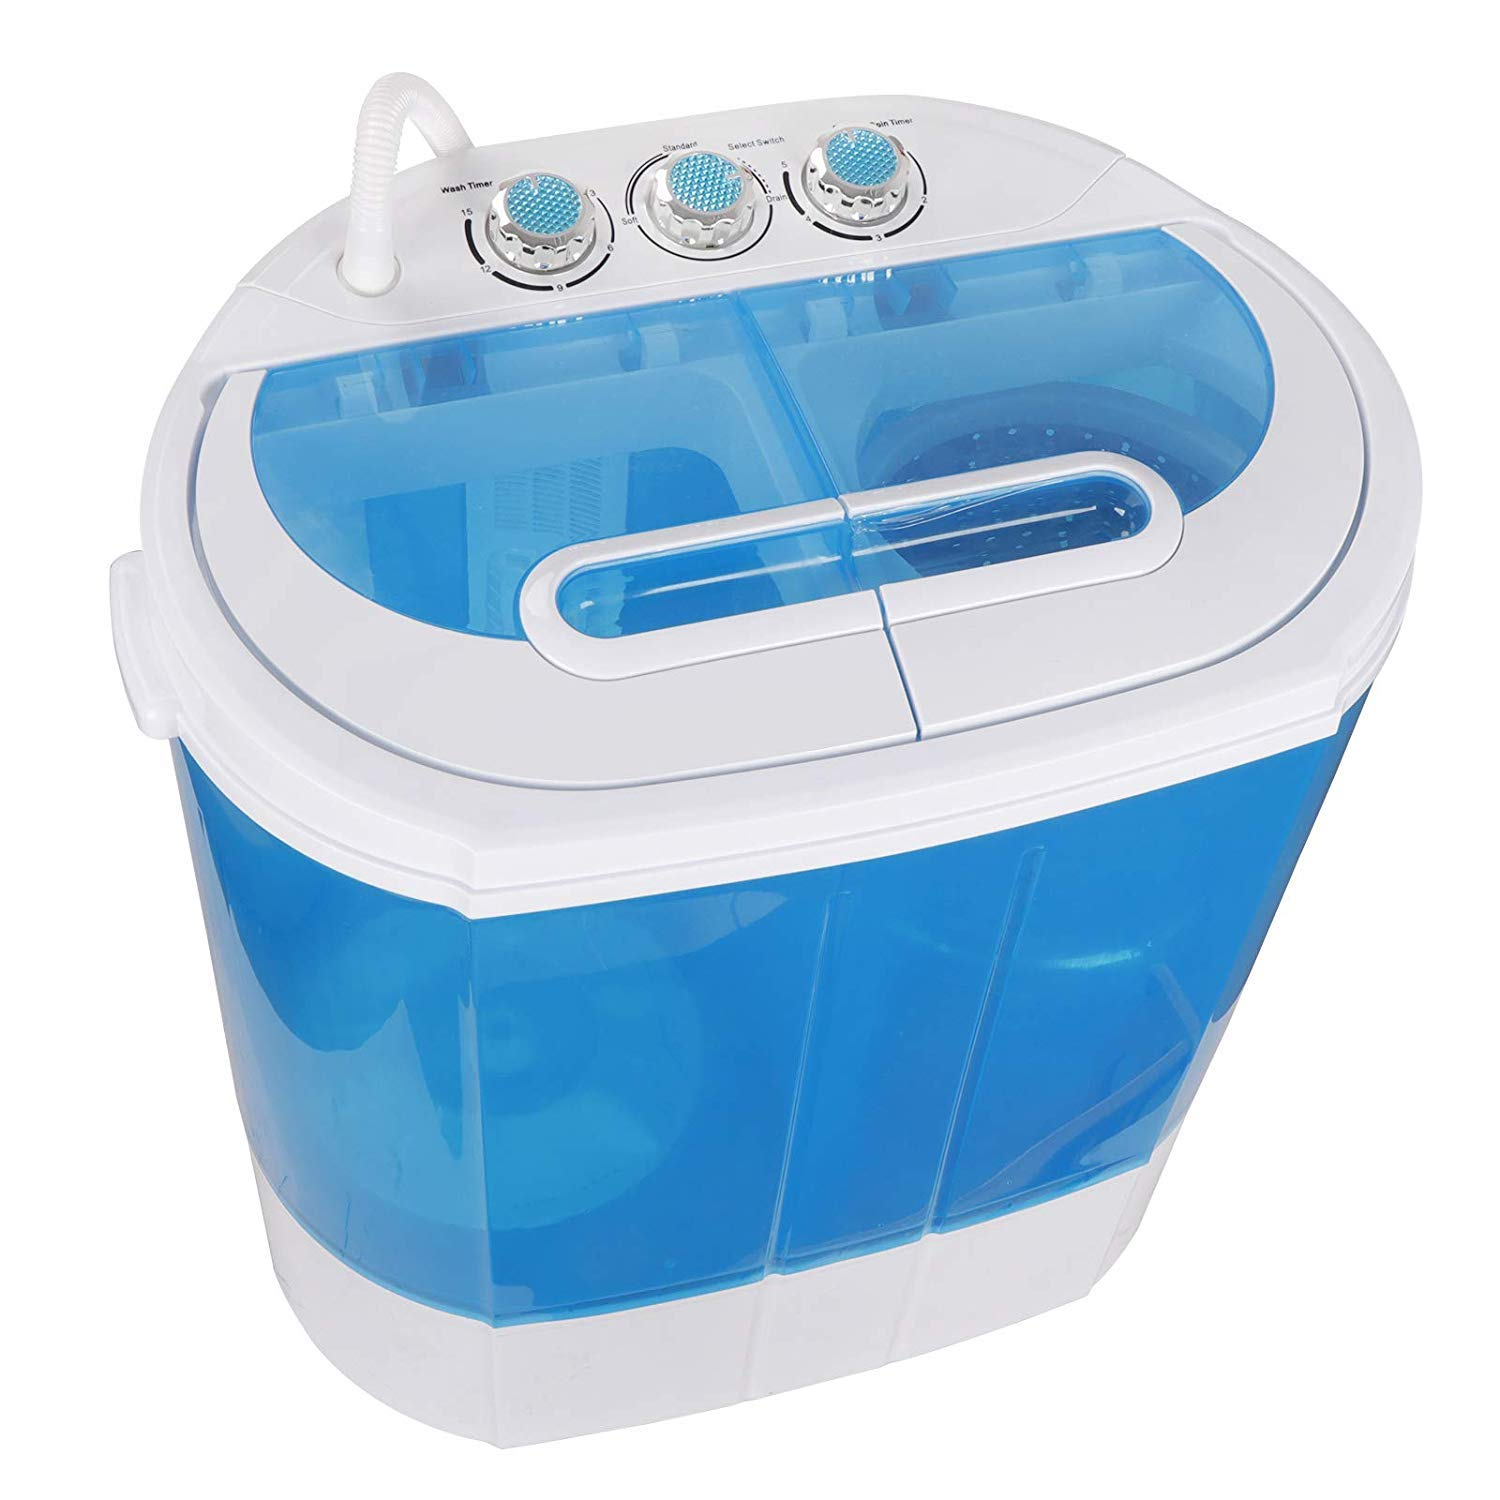 HomGarden 10lbs Portable Washing Machine with Twin Tub Electric Compact Washing Machine Mini Laundry w Washer Spinner, Gravity Drain Pump and Drain Hose